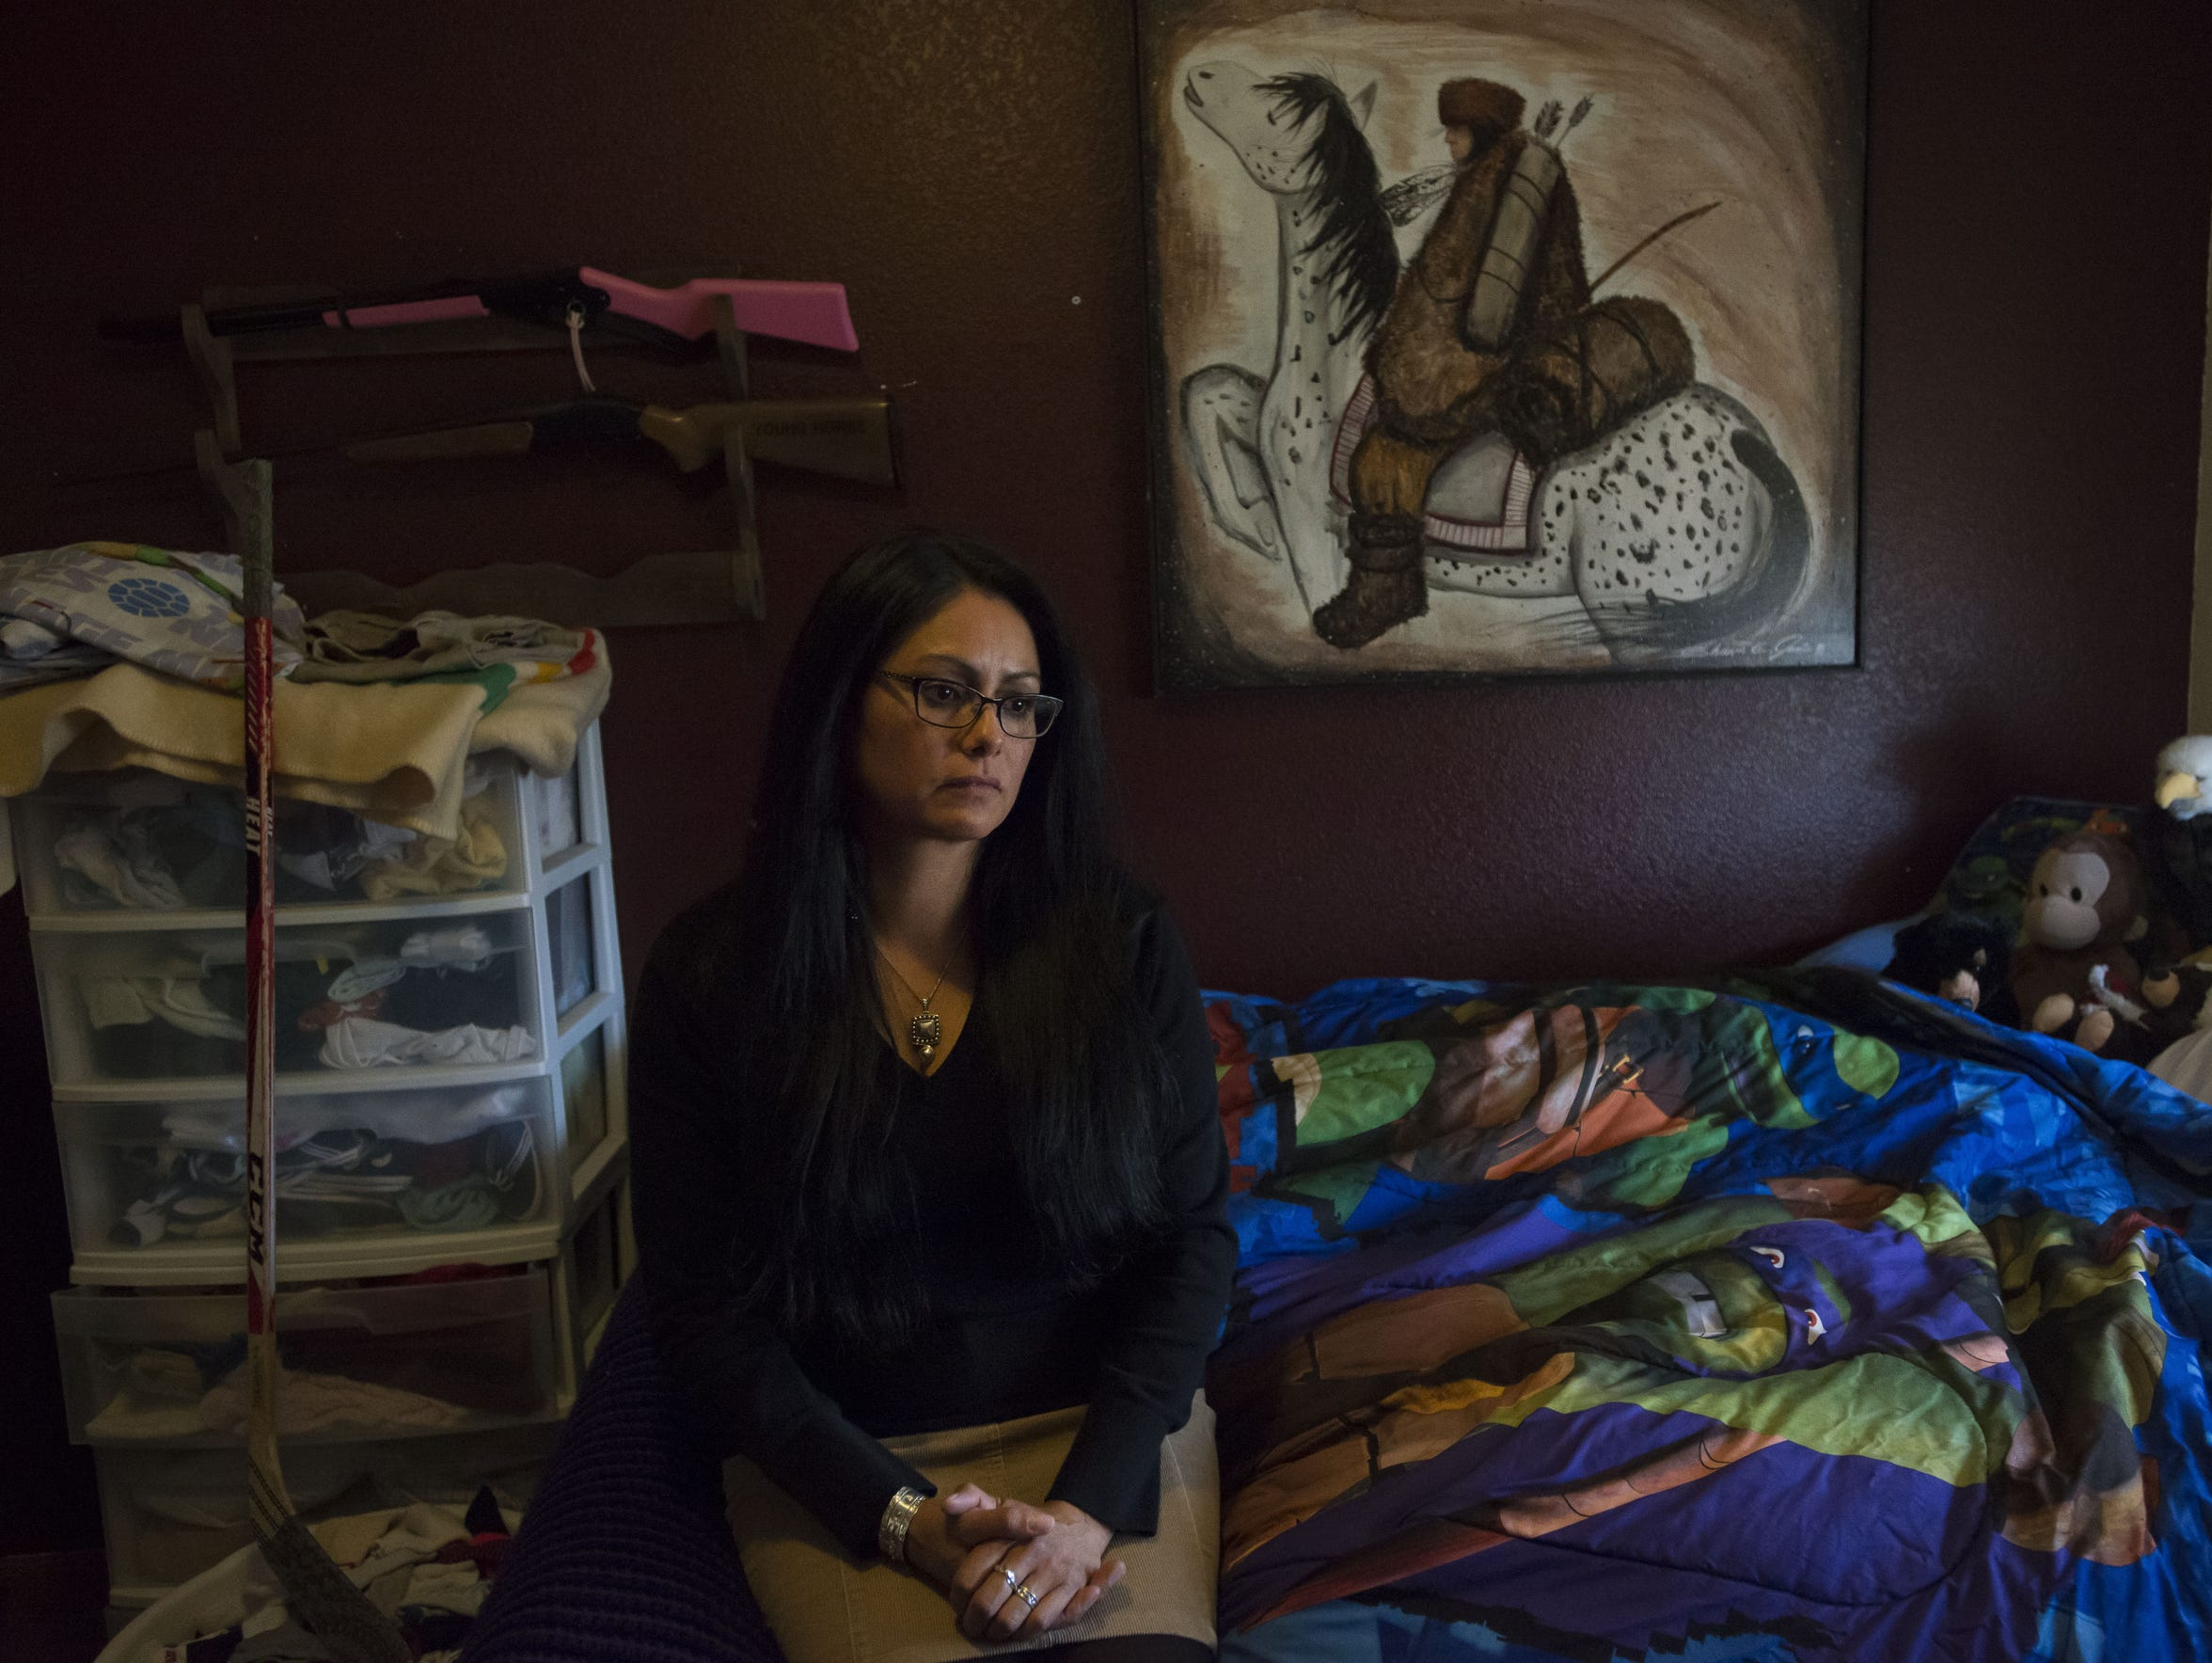 Lydia Lerma, the mother of the first victim who came